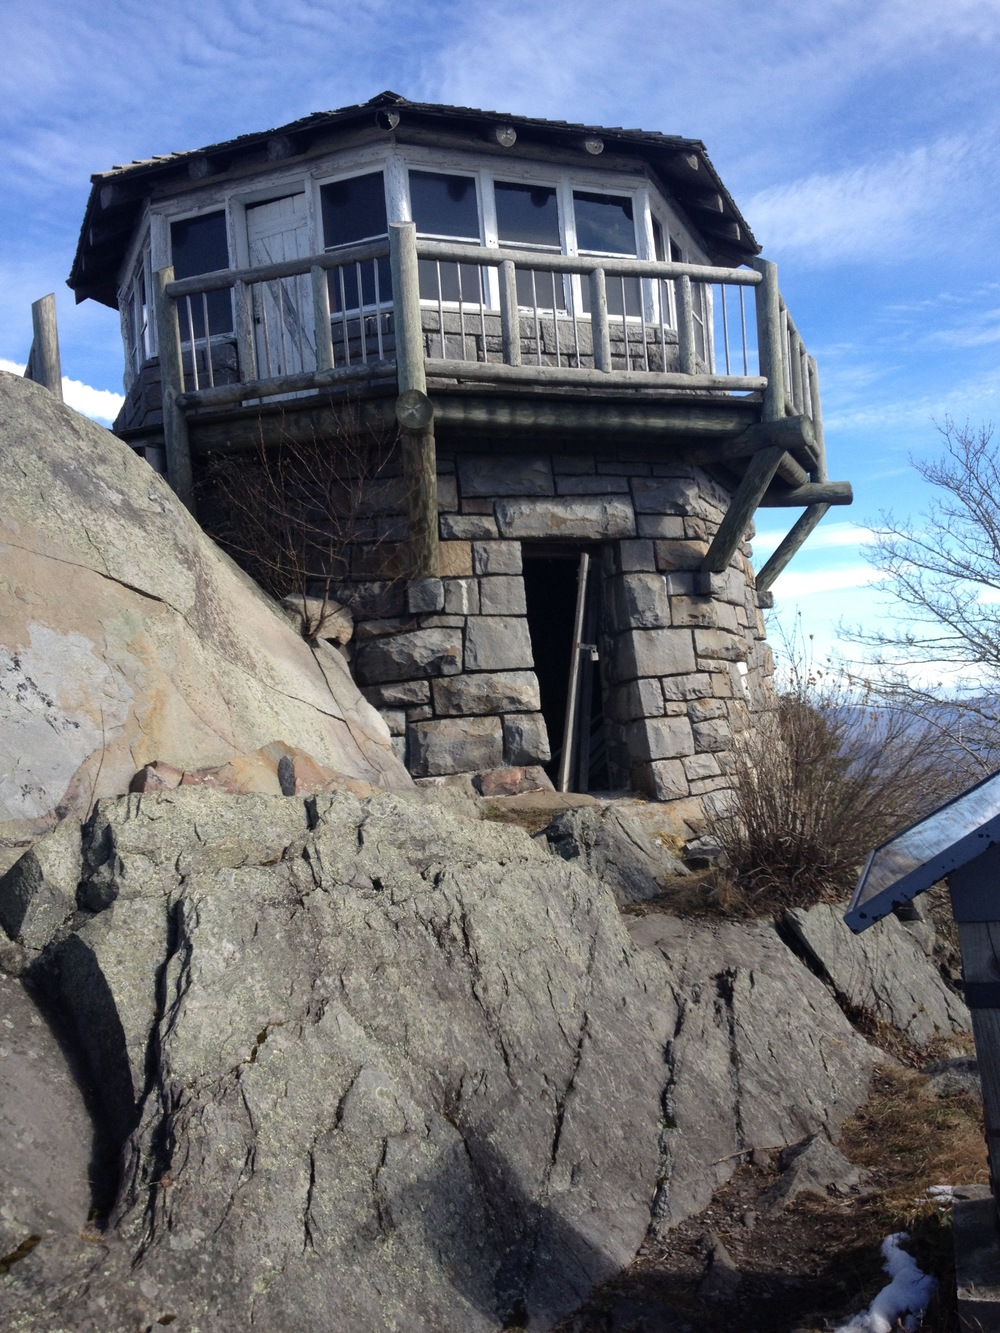 Mt. Cammerer's Fire Tower is a unique shape and built right into the rocks with a cistern built in below.  I've never been in another tower like this one!